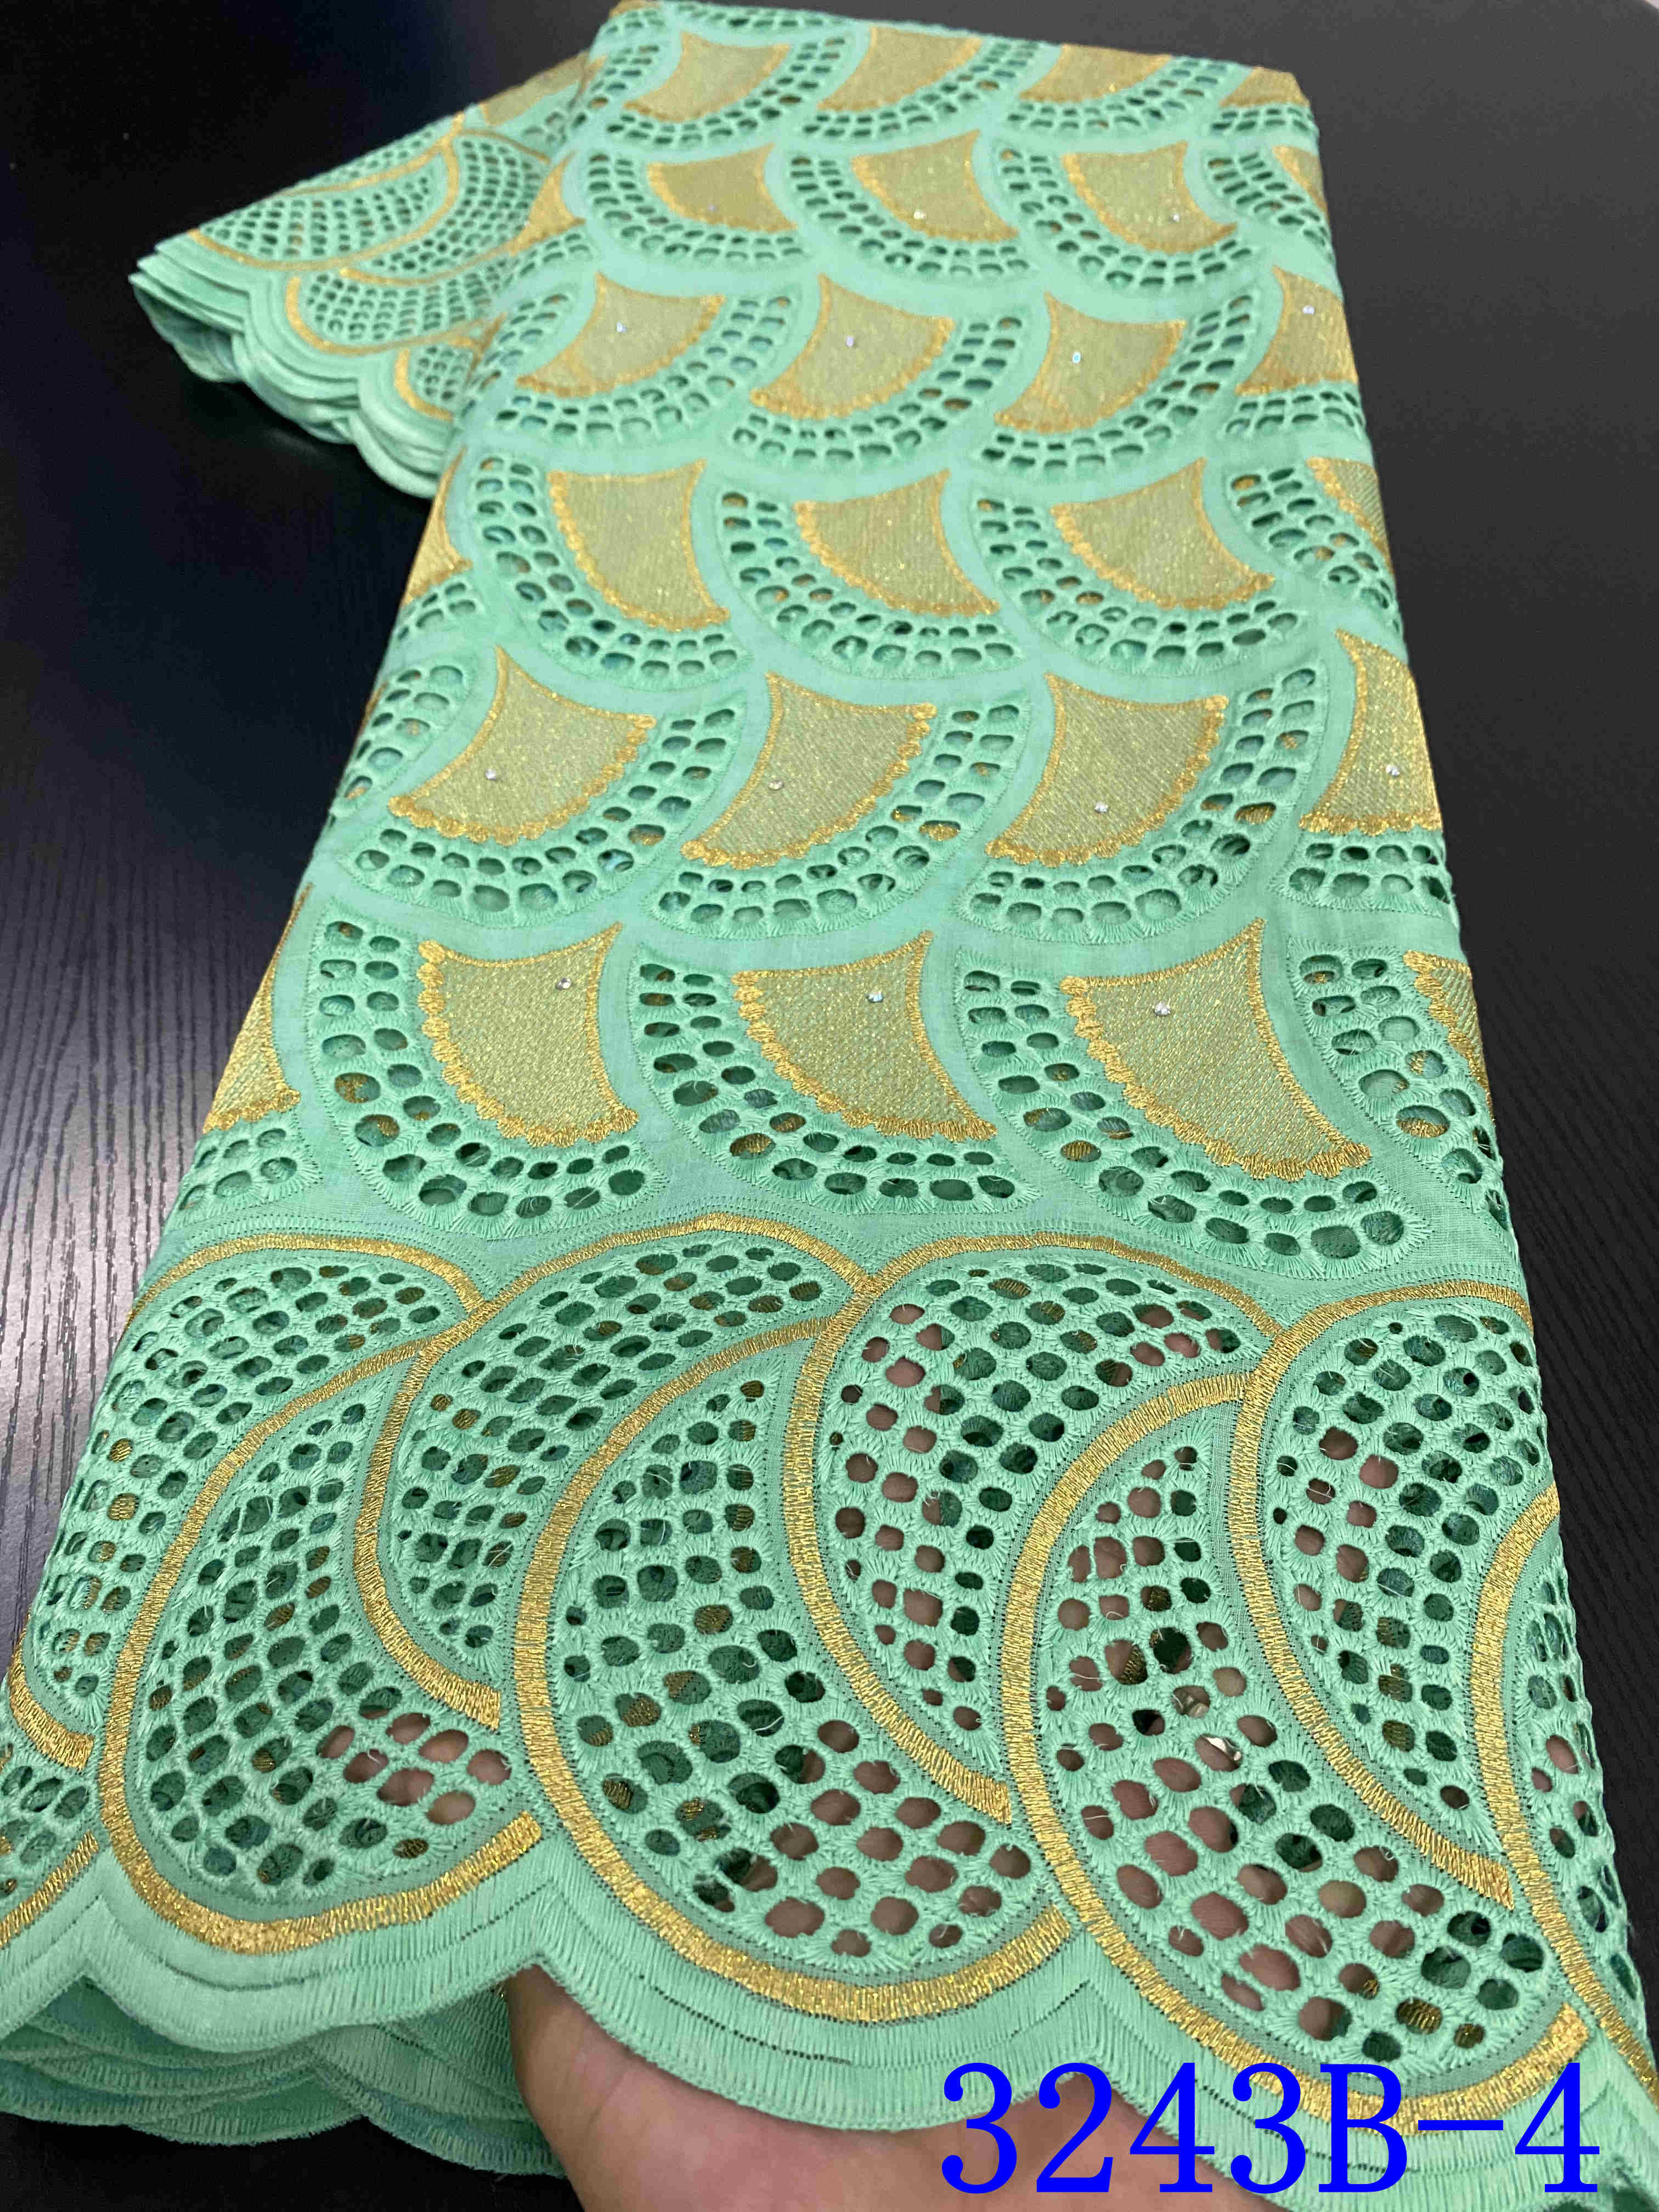 African Lace Fabric 2020 High Quality Lace Embroidered 100% Cotton Voile Lace With Stones Nigerian Voile Lace Fabrics YA3243B-4